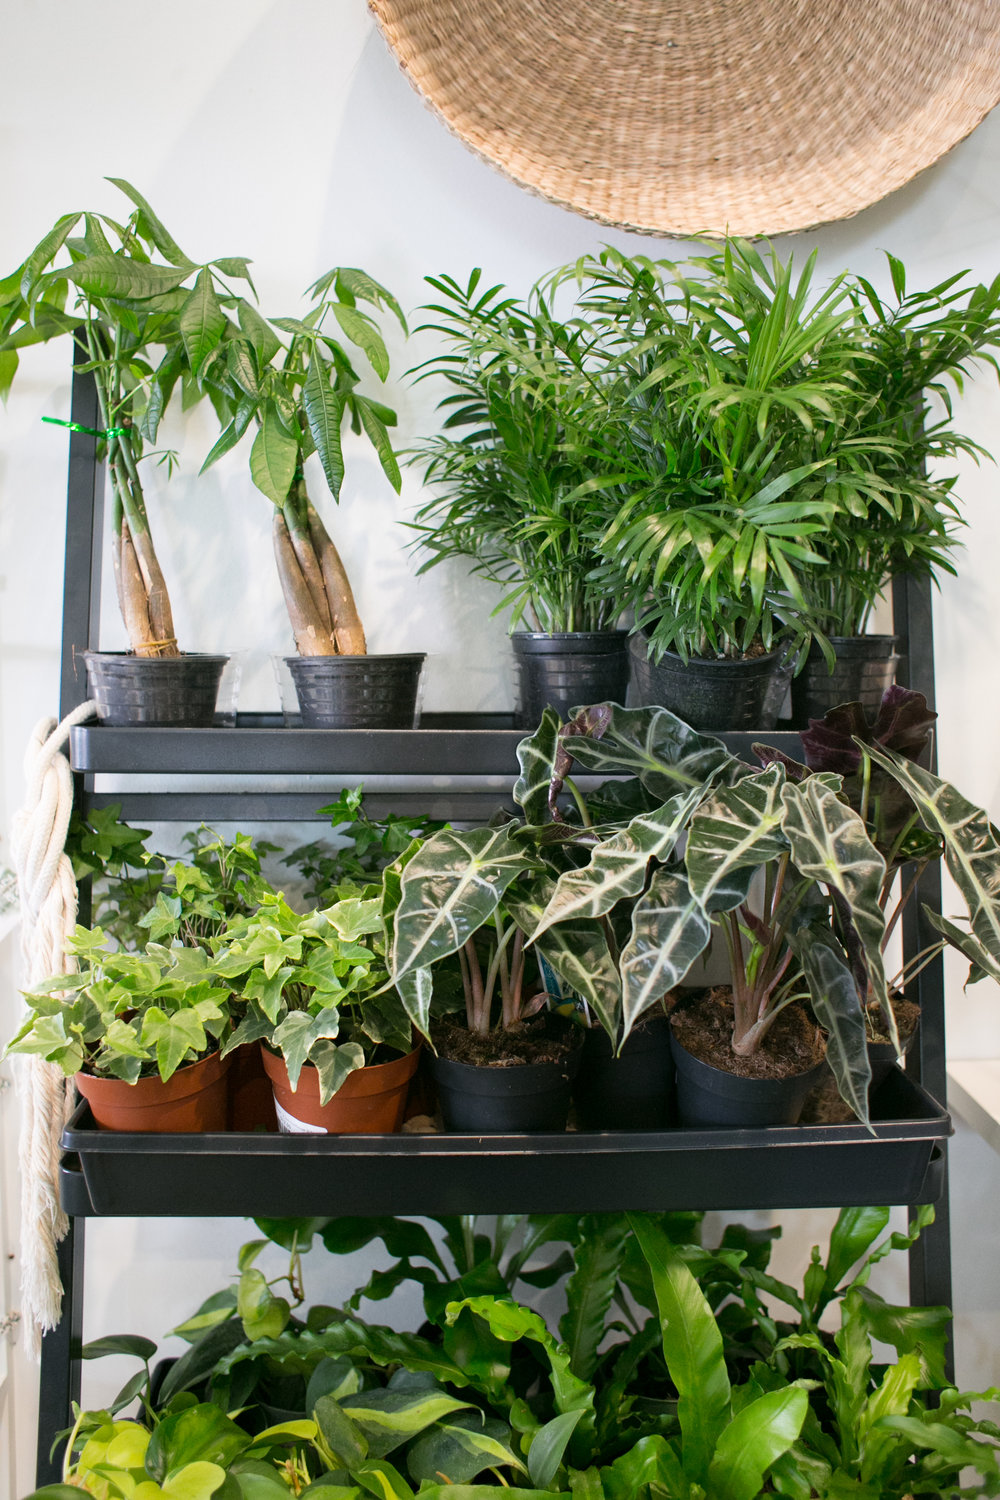 Grouping plants that require increased humidity actually helps create more humidity, which is preferable for most tropical plants.